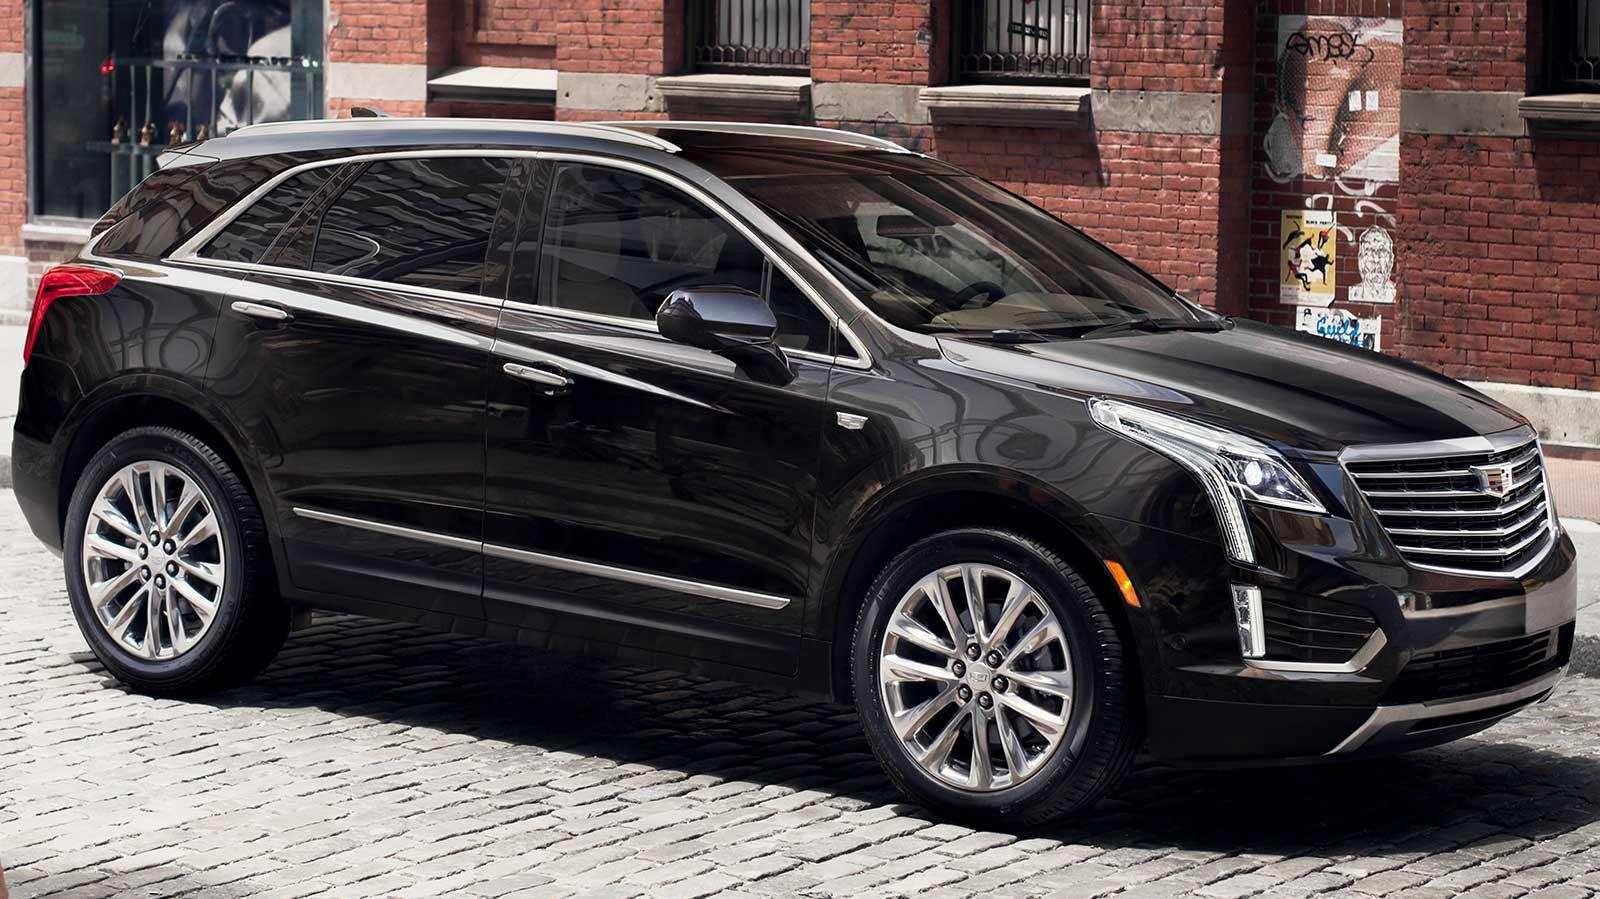 92 Great 2019 Cadillac Suv Xt5 Release by 2019 Cadillac Suv Xt5